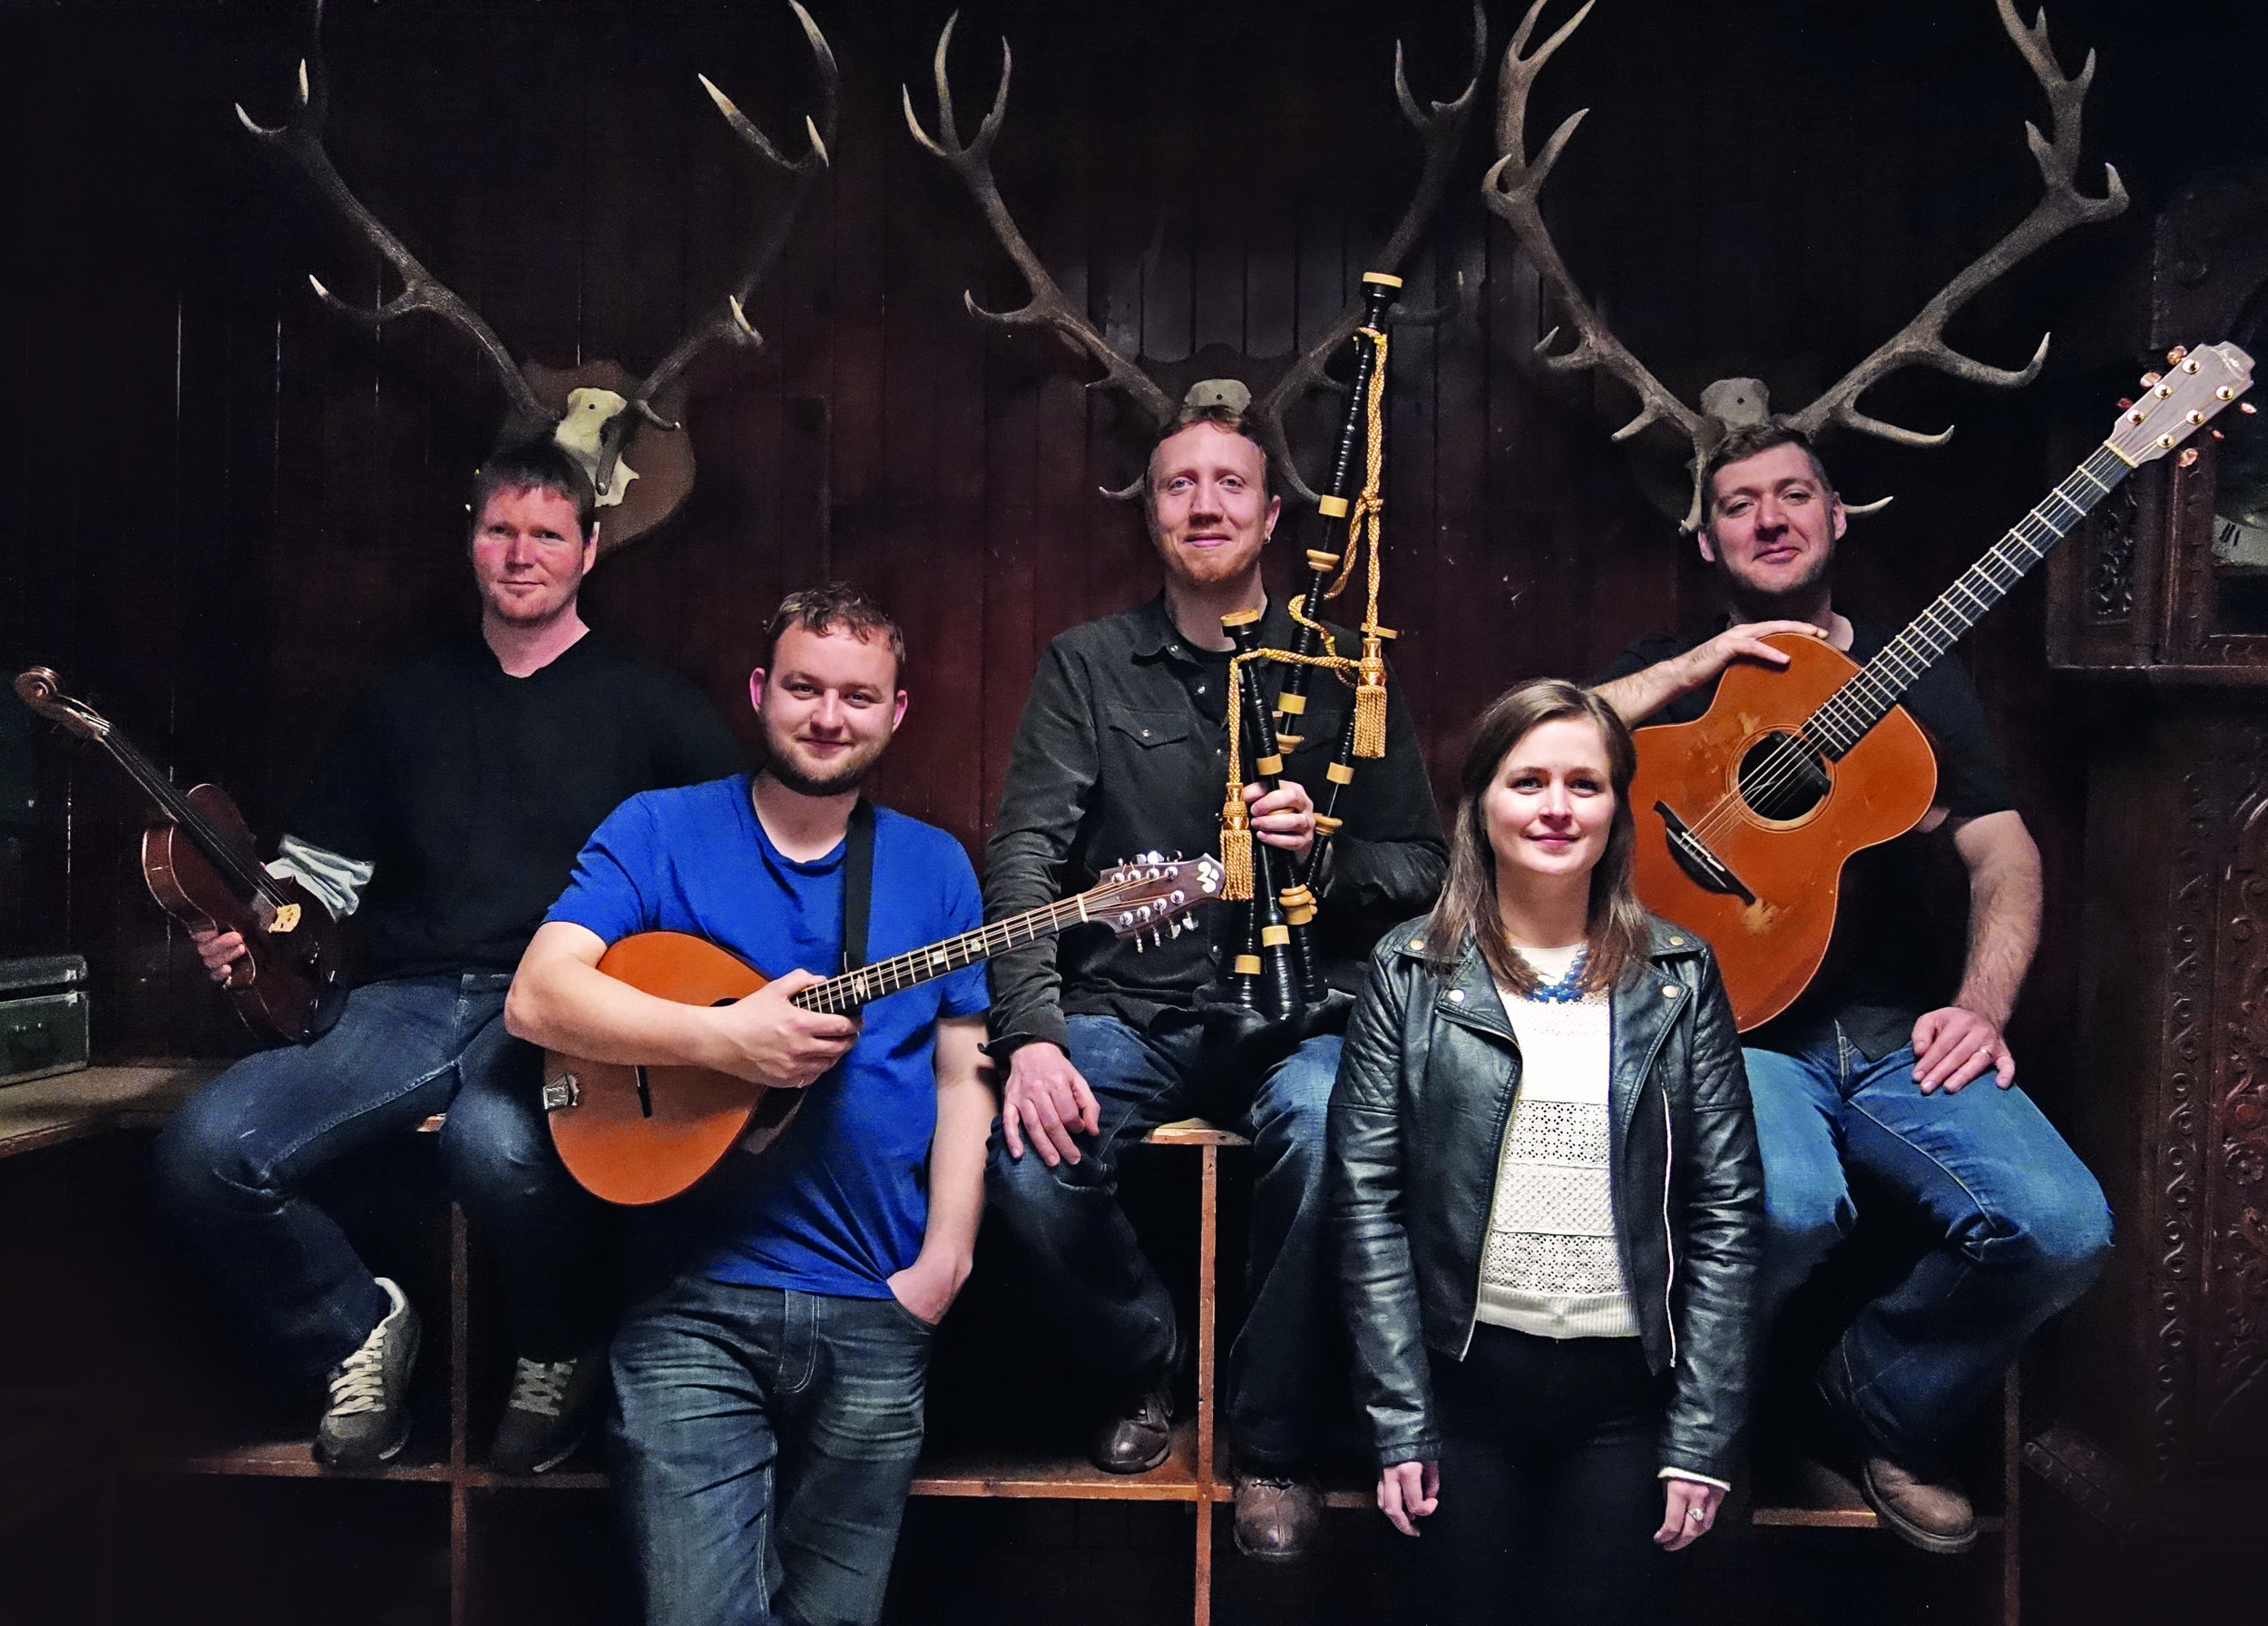 Daimh-Stags-band-photo-for-print.jpg